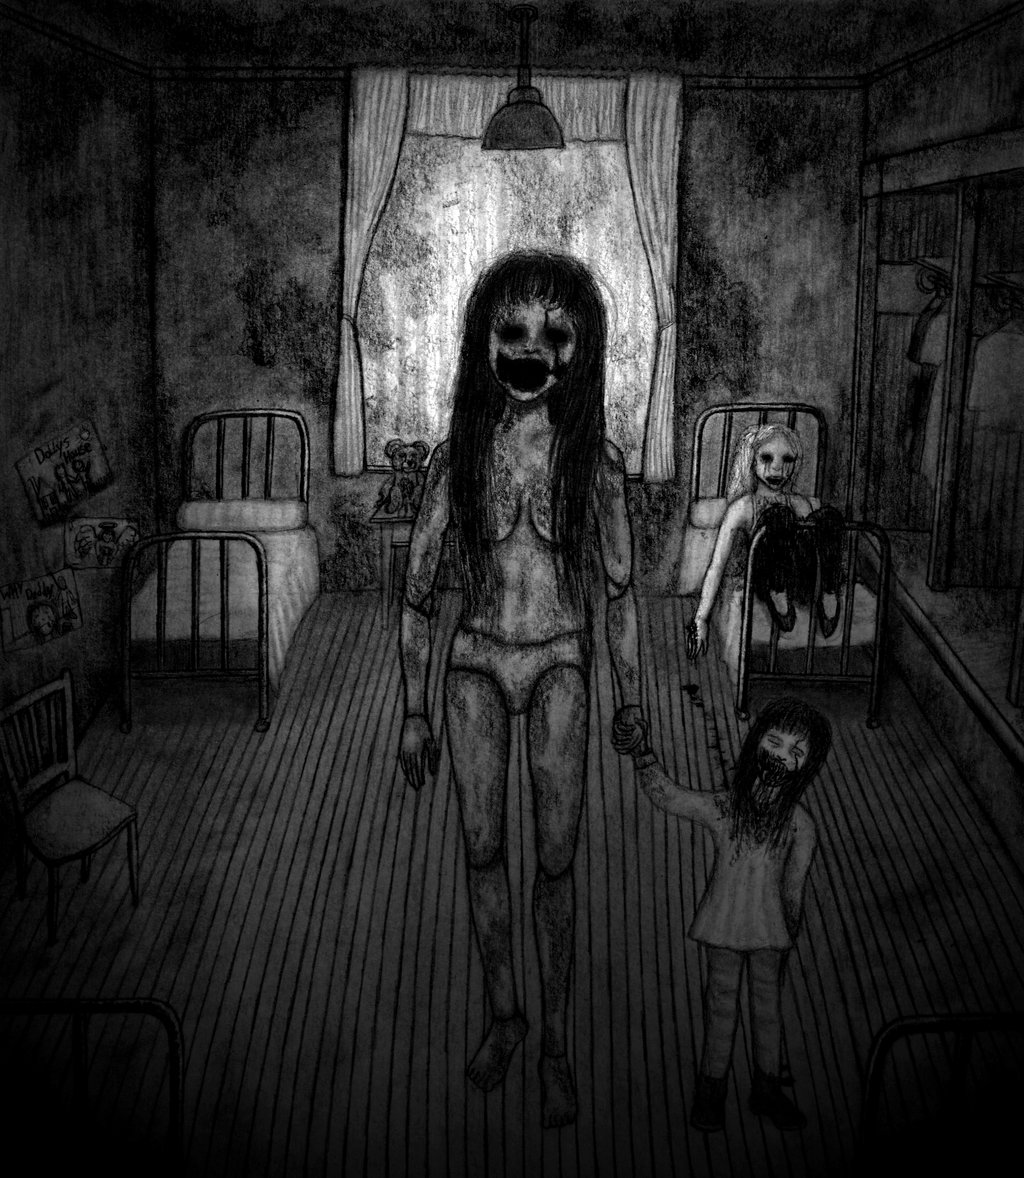 Drawn dall horror doll #5